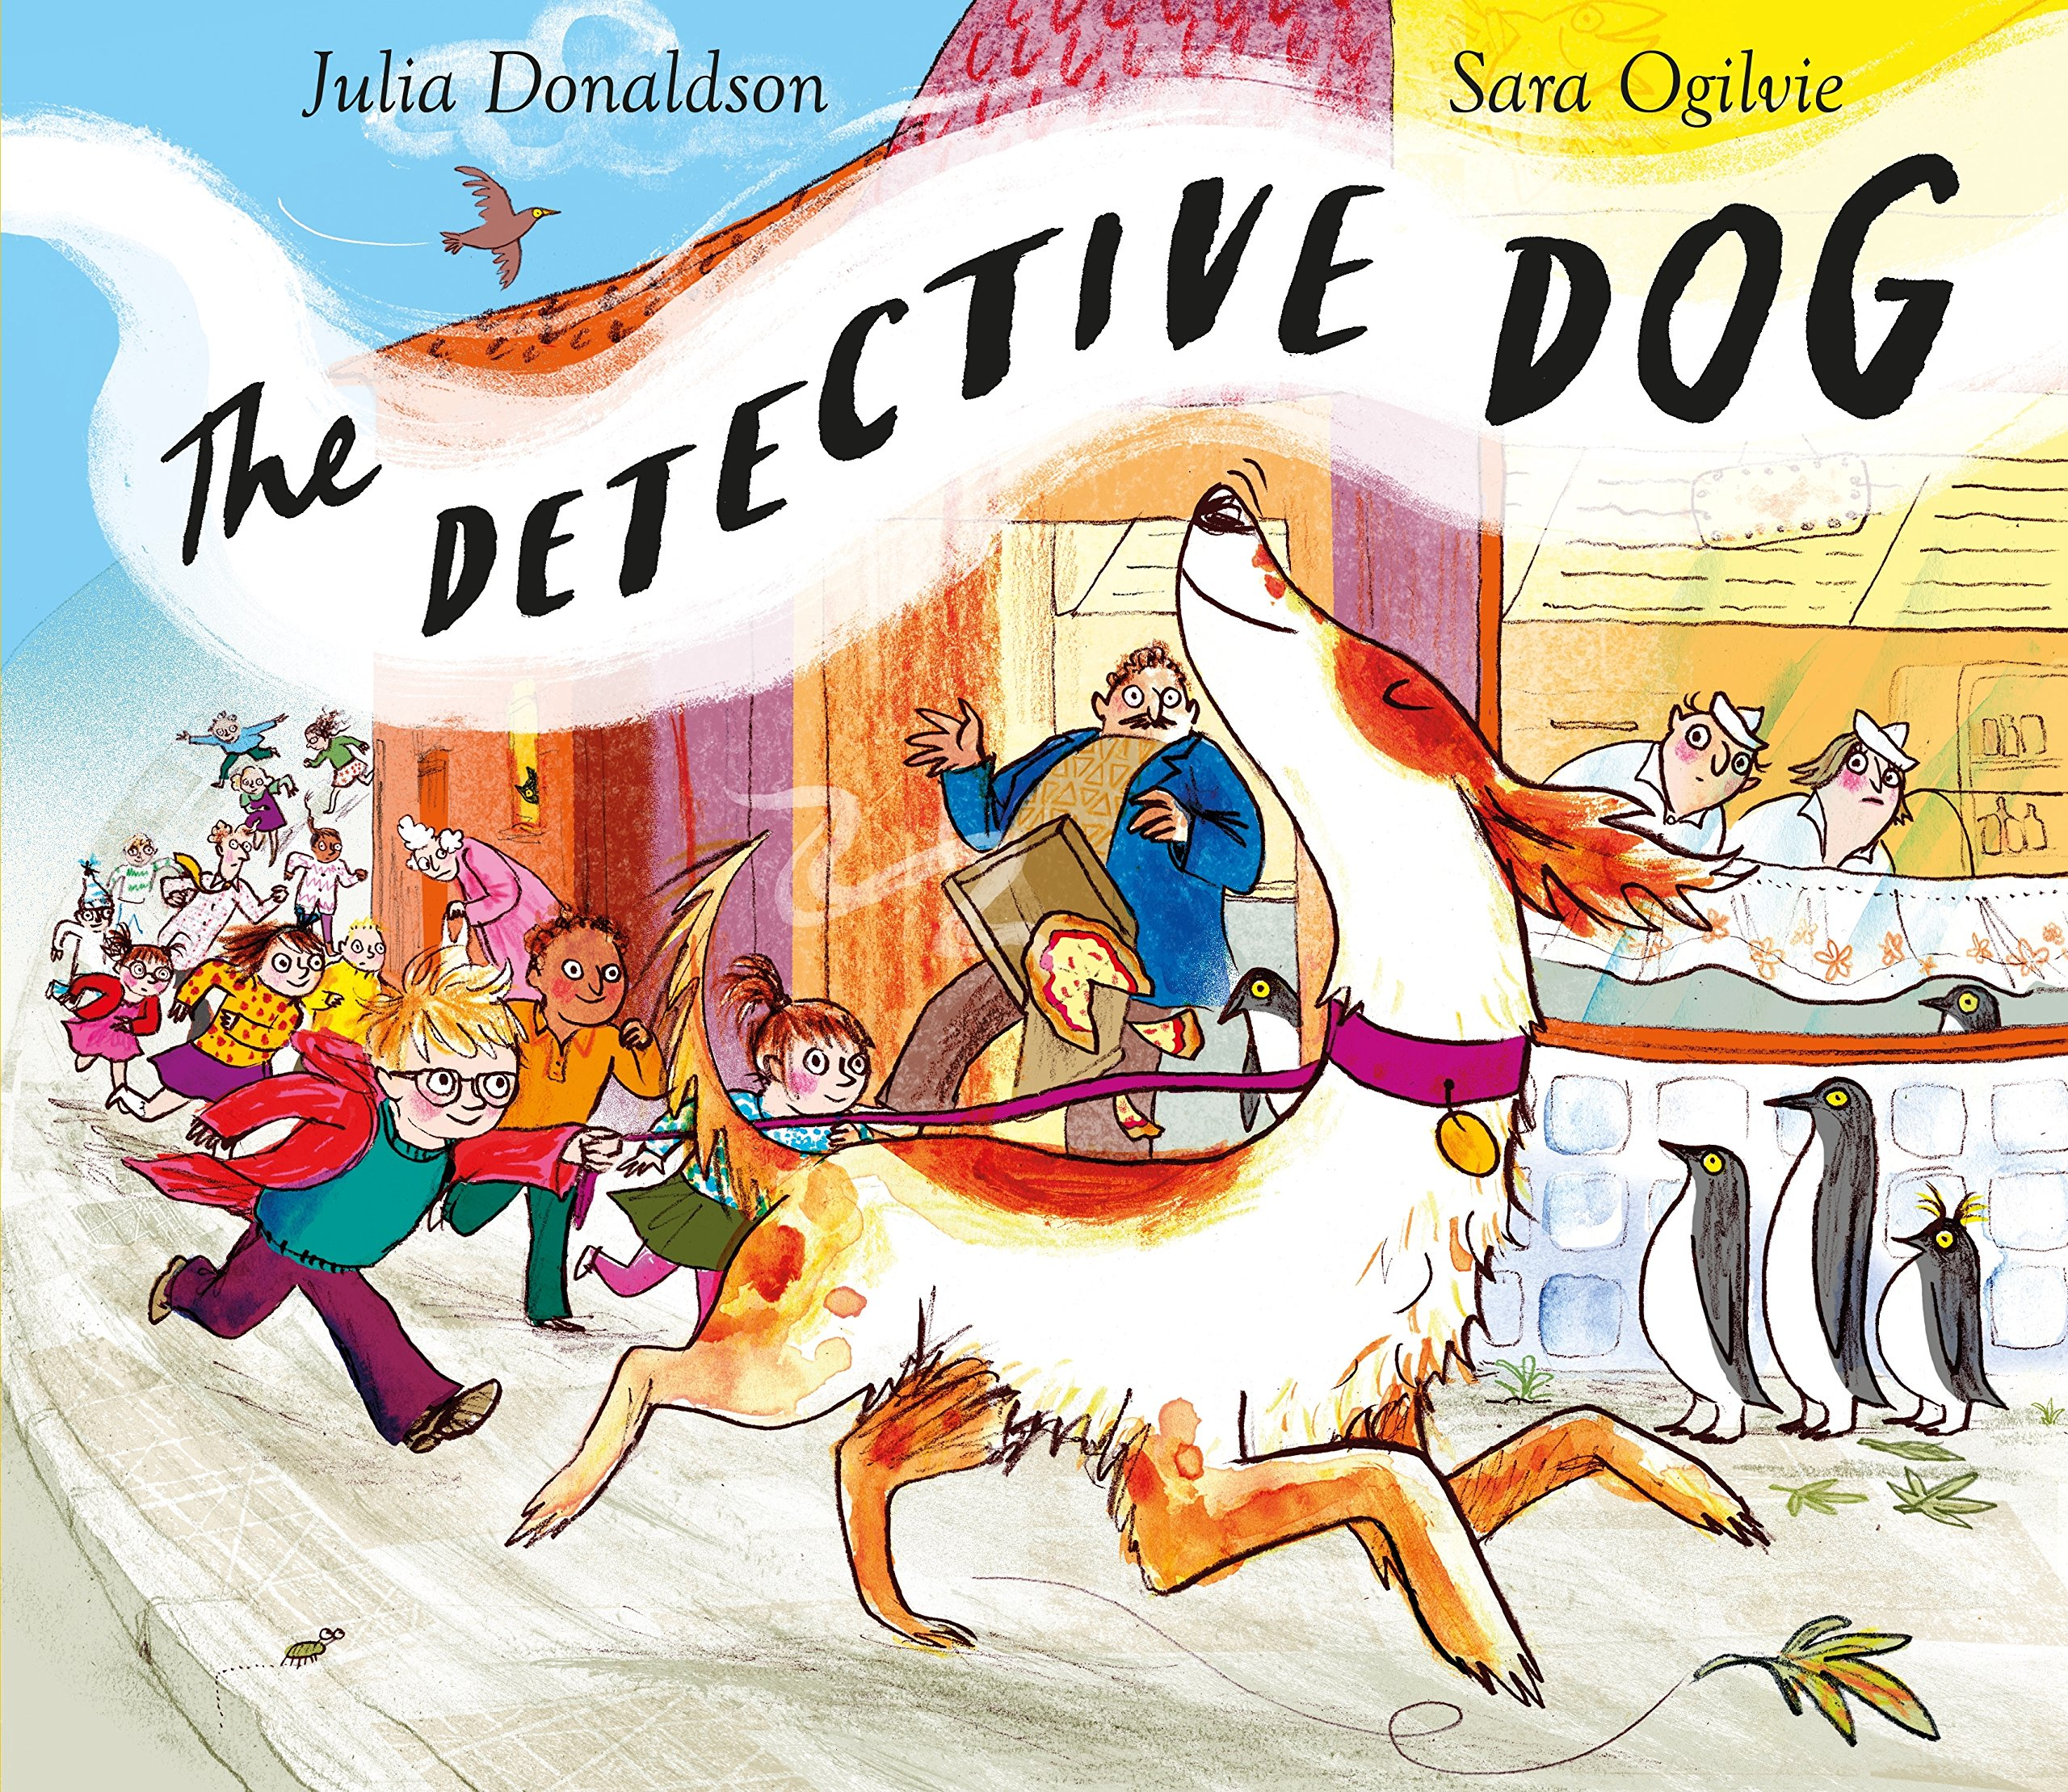 My recommendations in picture books about animals. The Detective Dog by Julia Donaldson, cover.